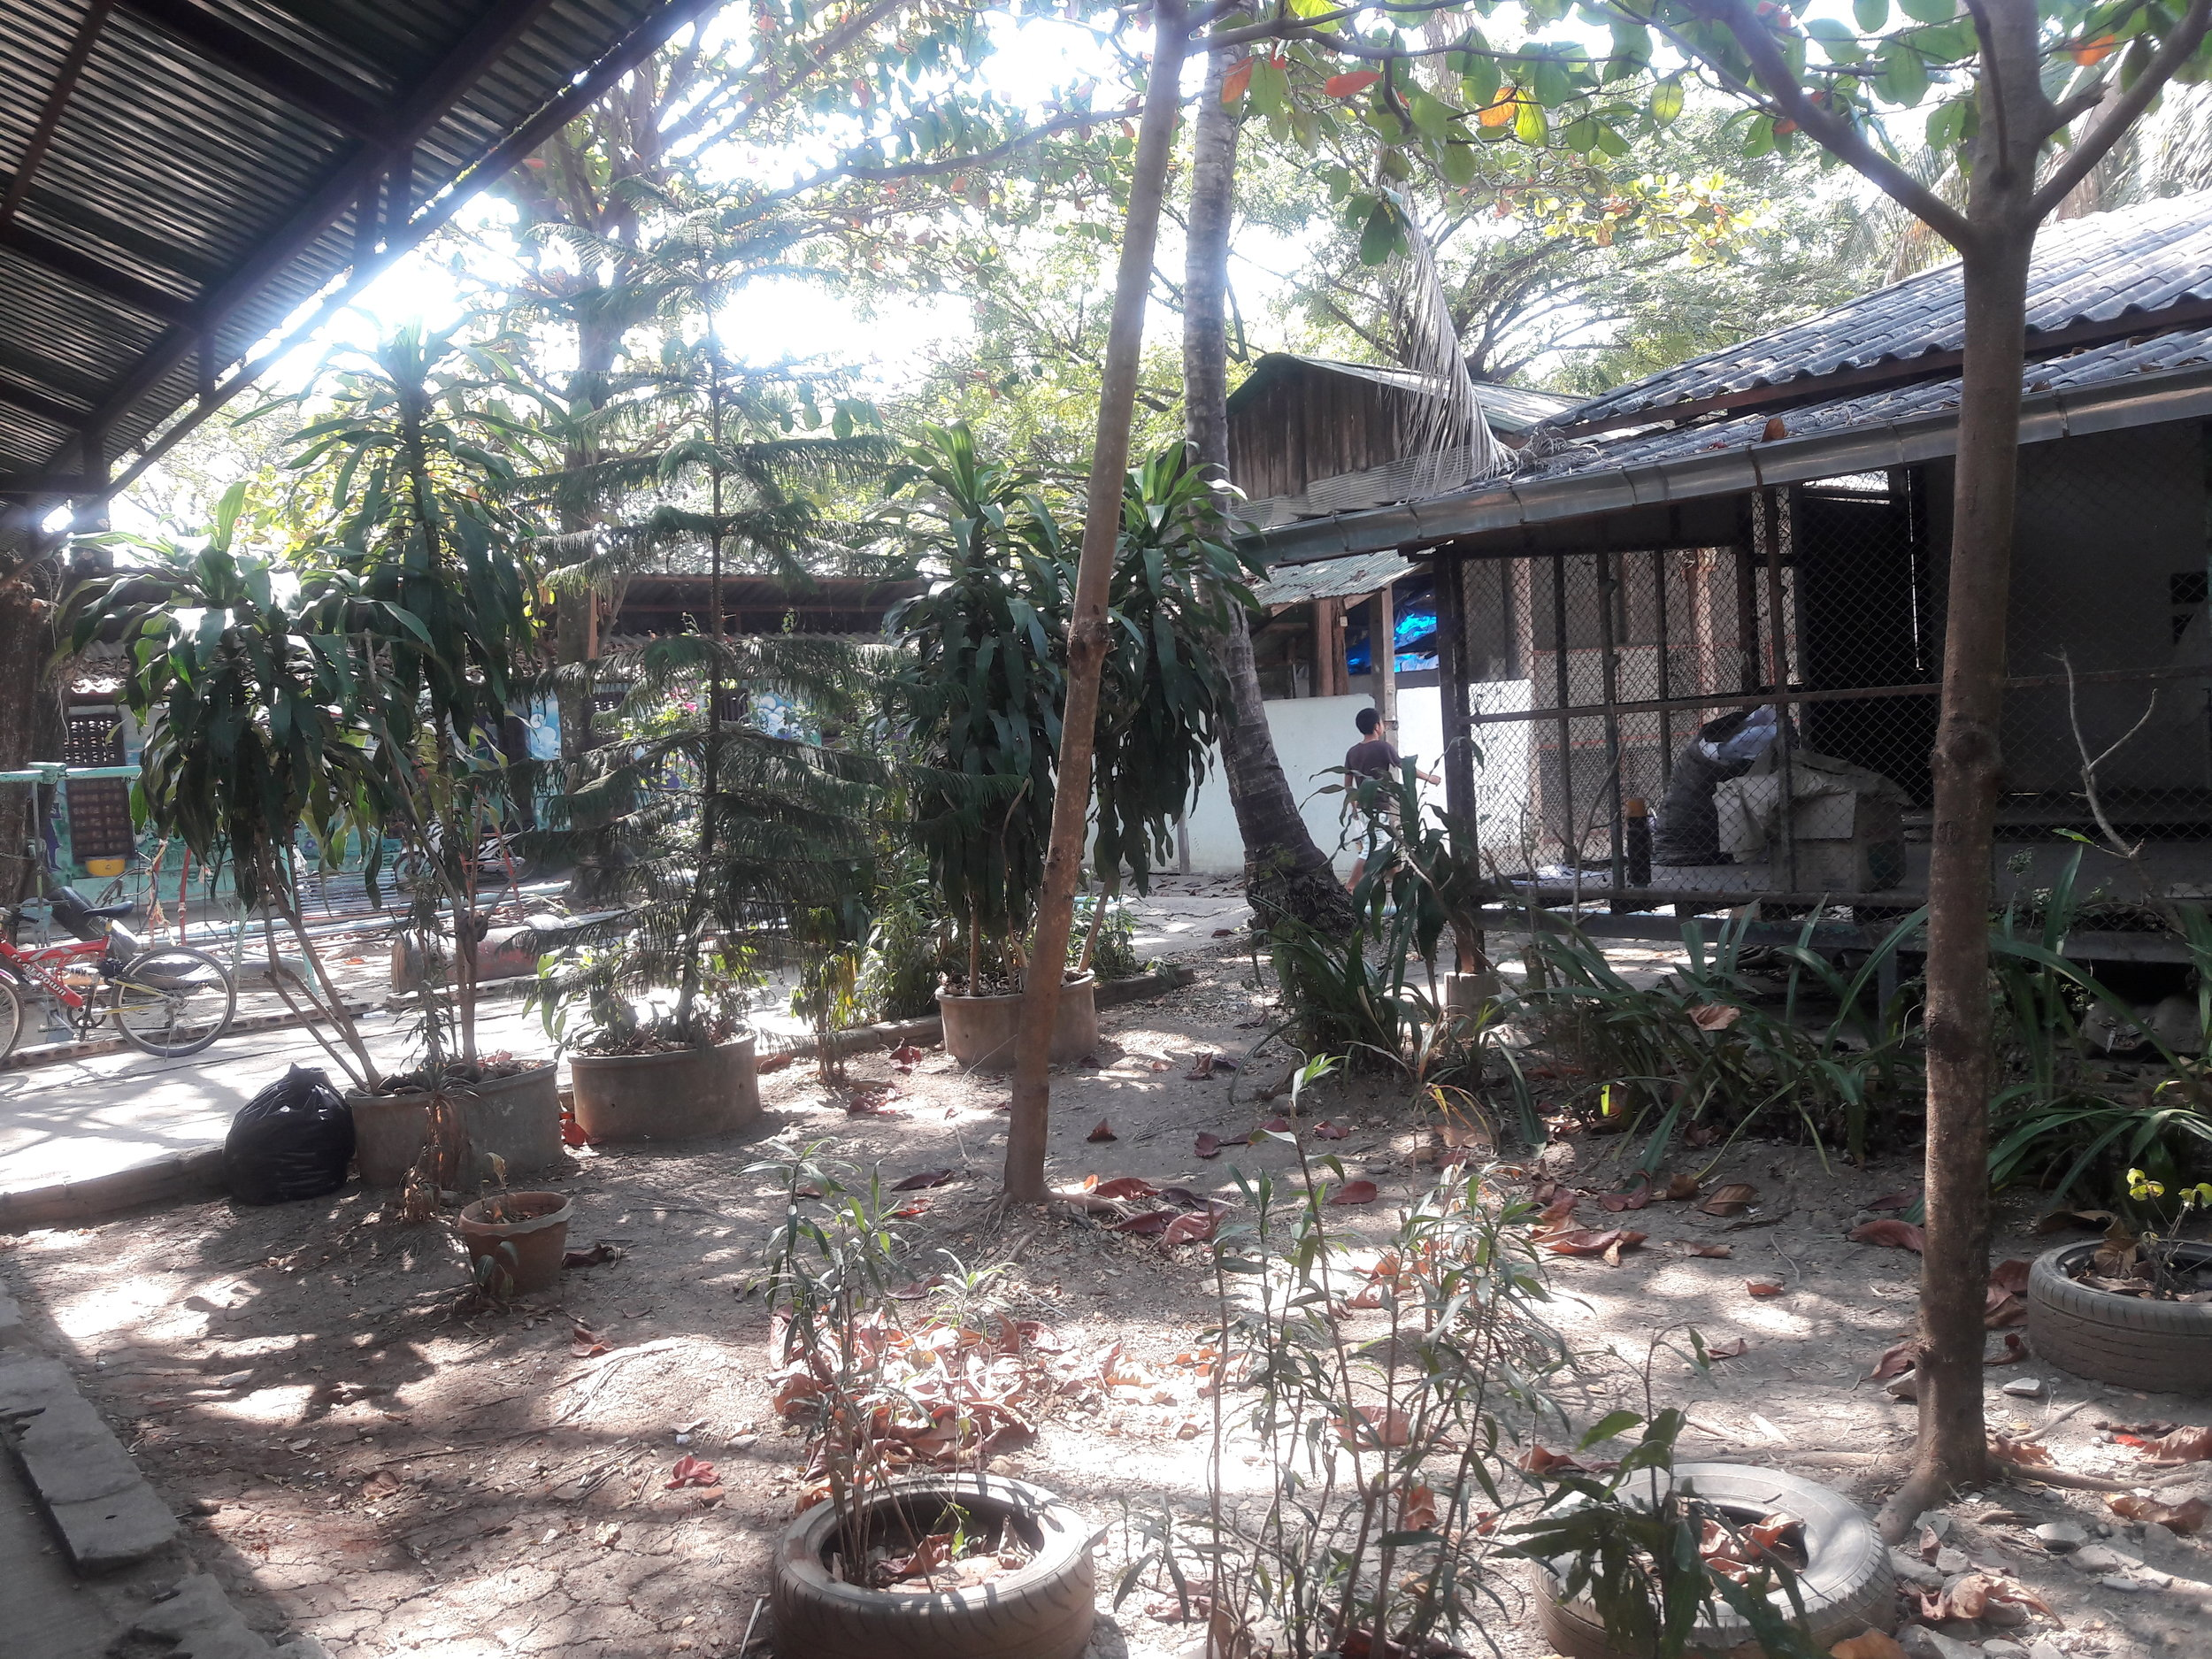 The compound where teachings for the TEMP team occurred.